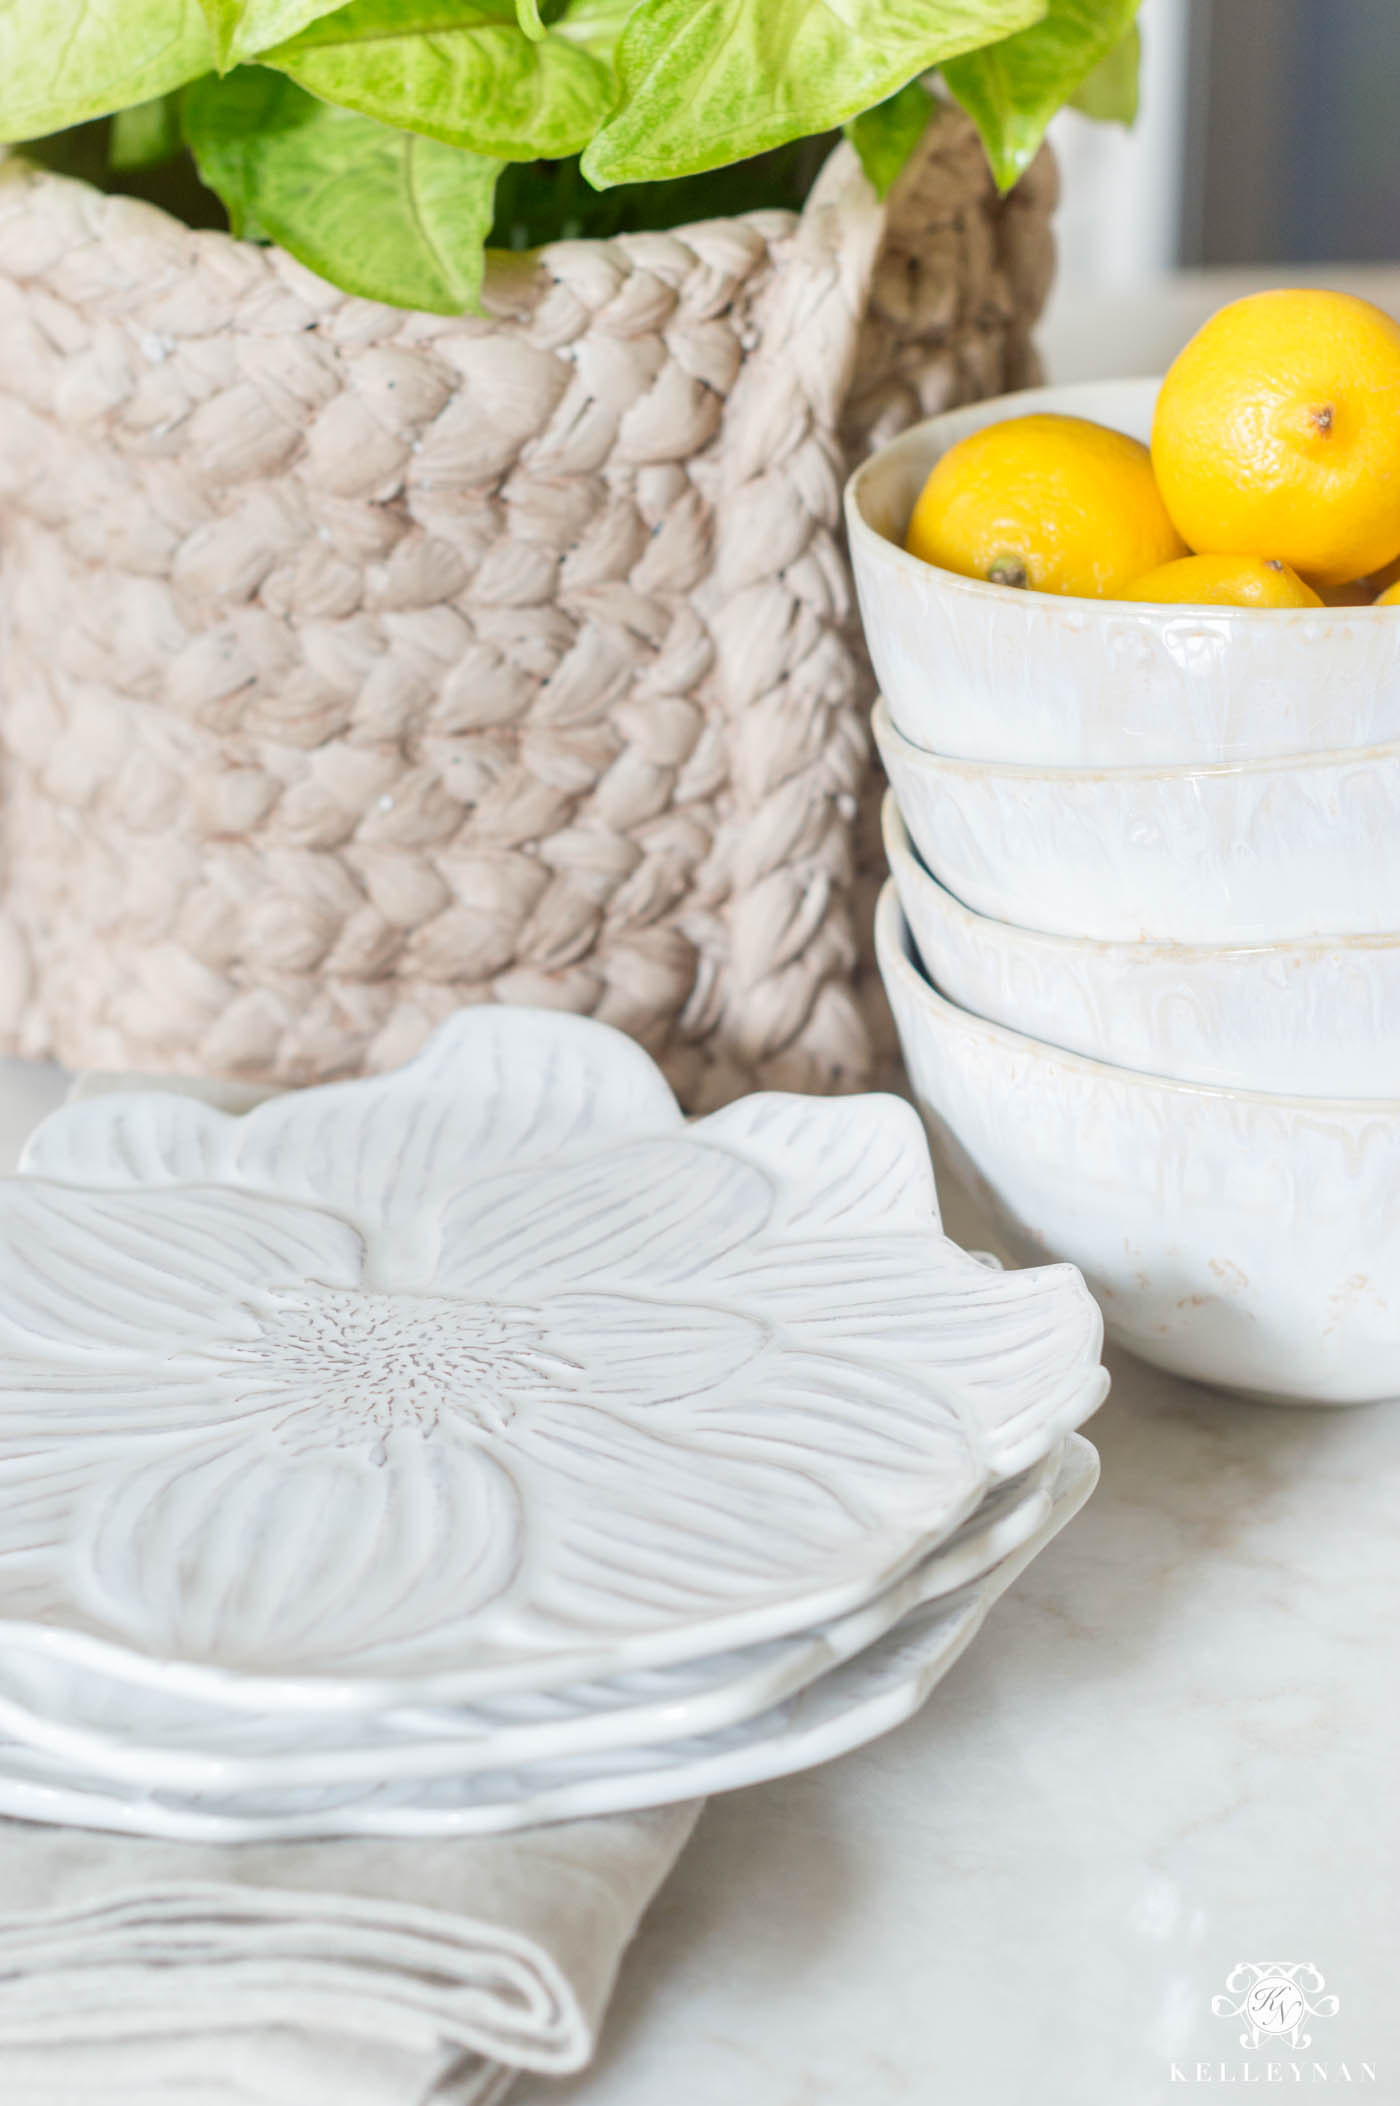 Floral plates and other pretty kitchen island decor